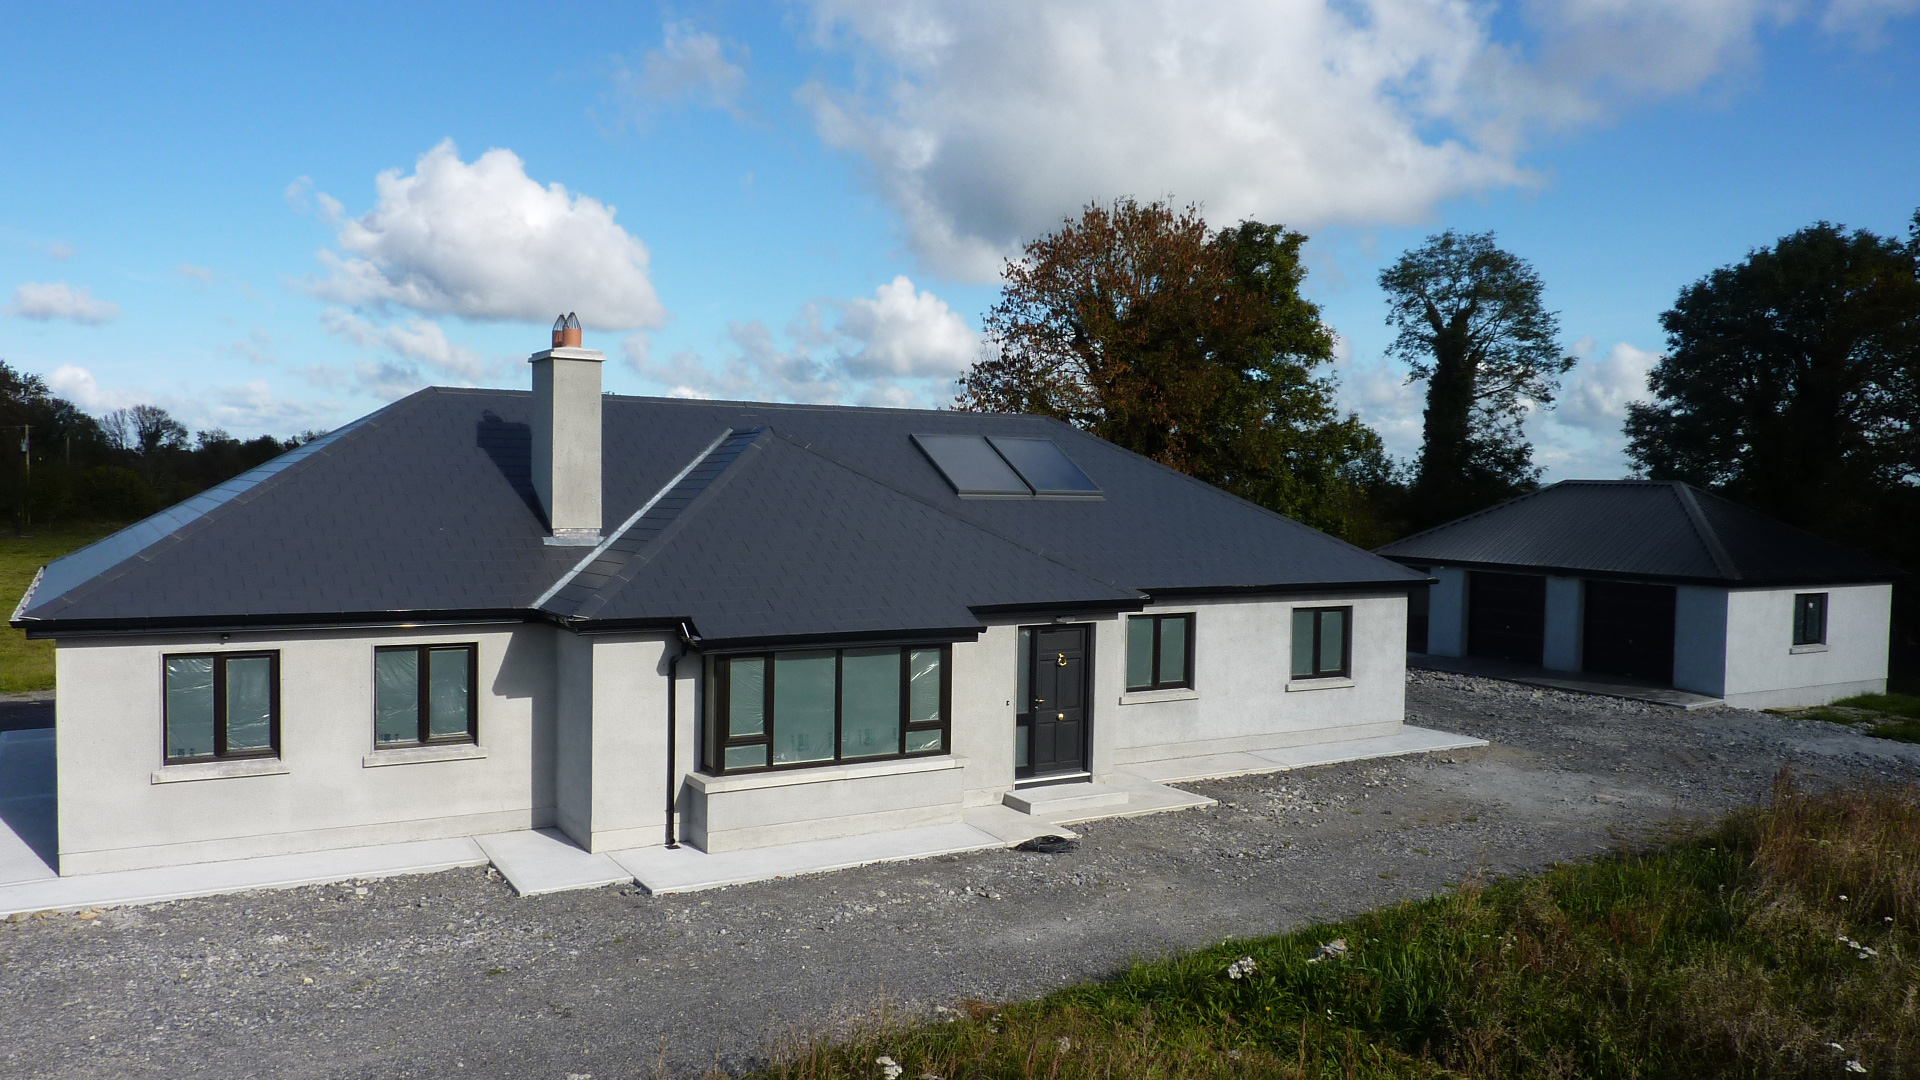 Bungalows finlay buildfinlay build for Bungalow designs ireland